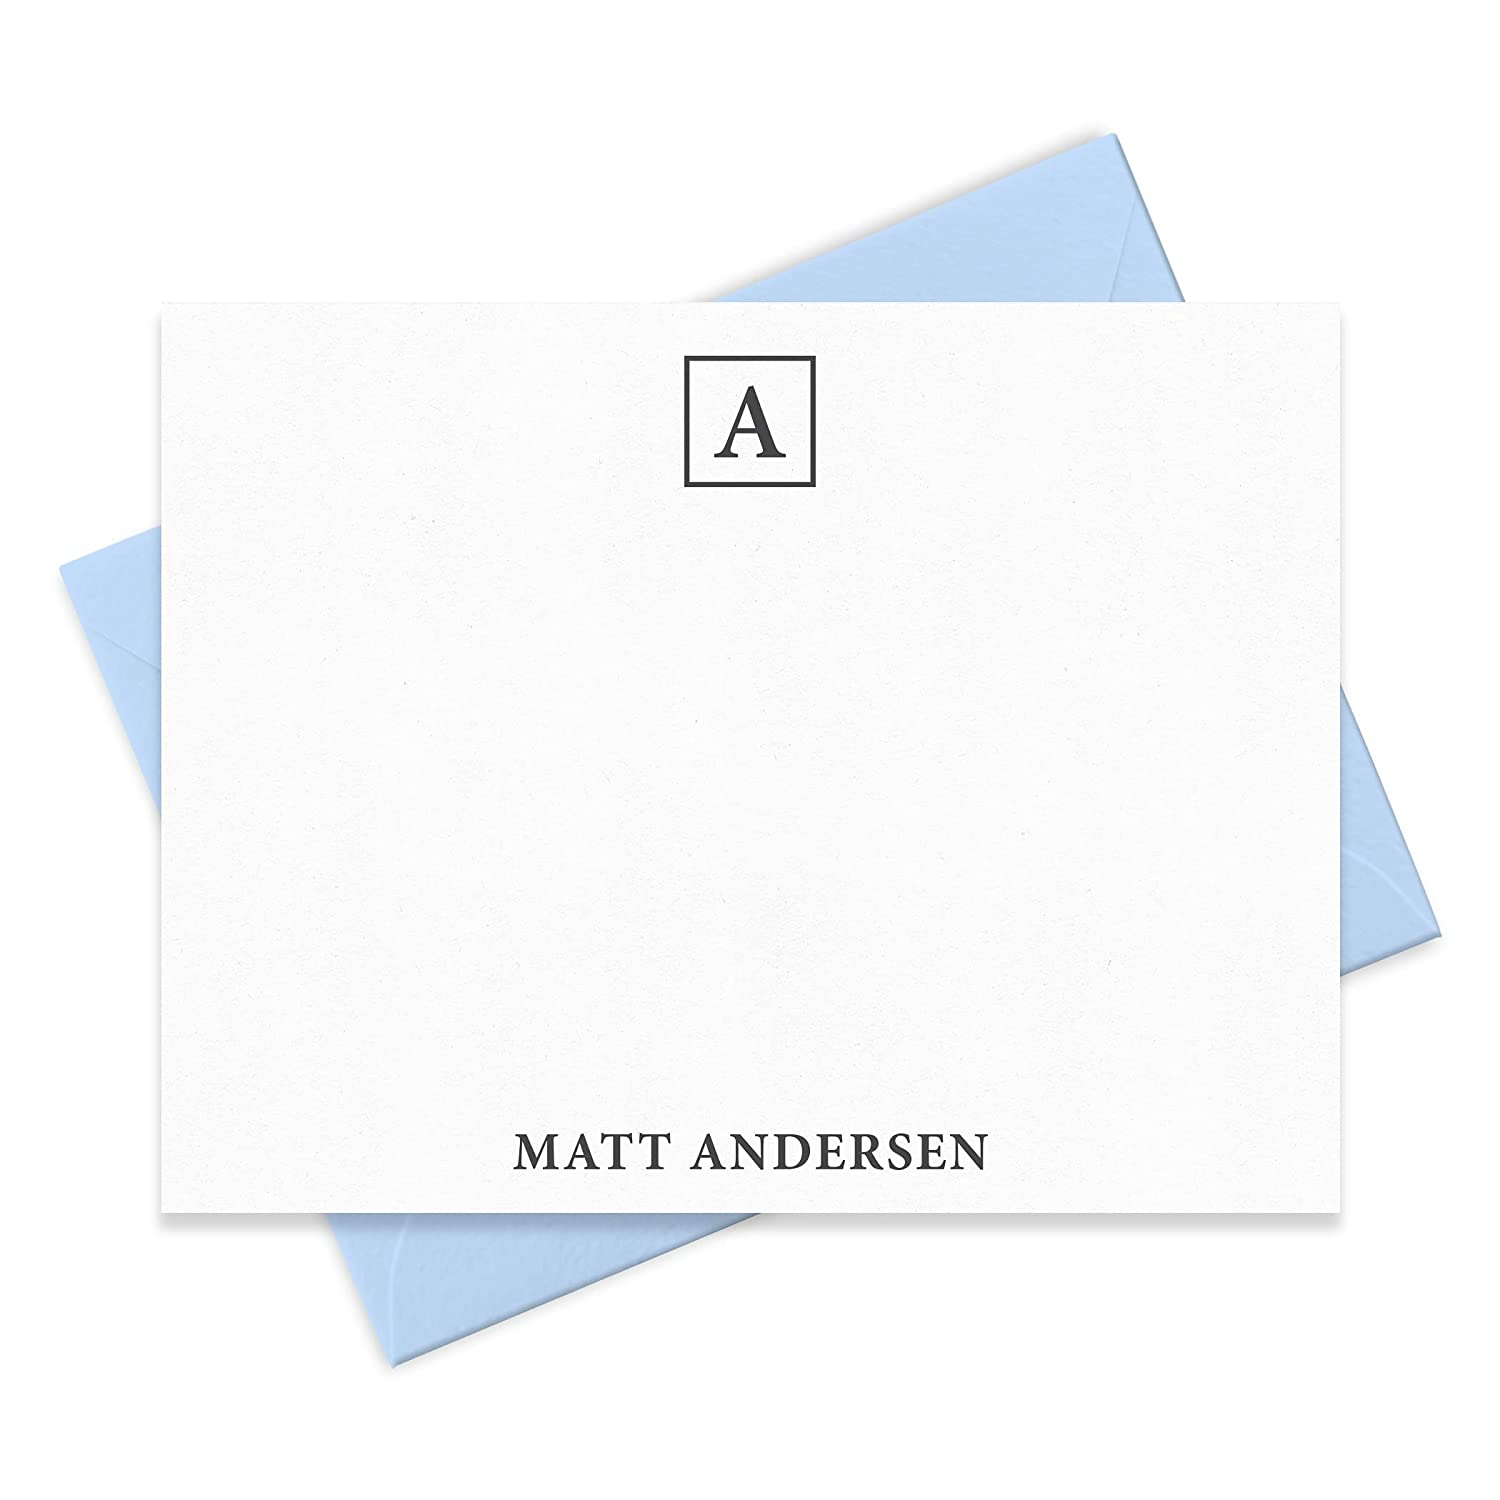 Monogrammed Note Card Price reduction Boxed Outlet ☆ Free Shipping Set Stationer Men - for Personalized